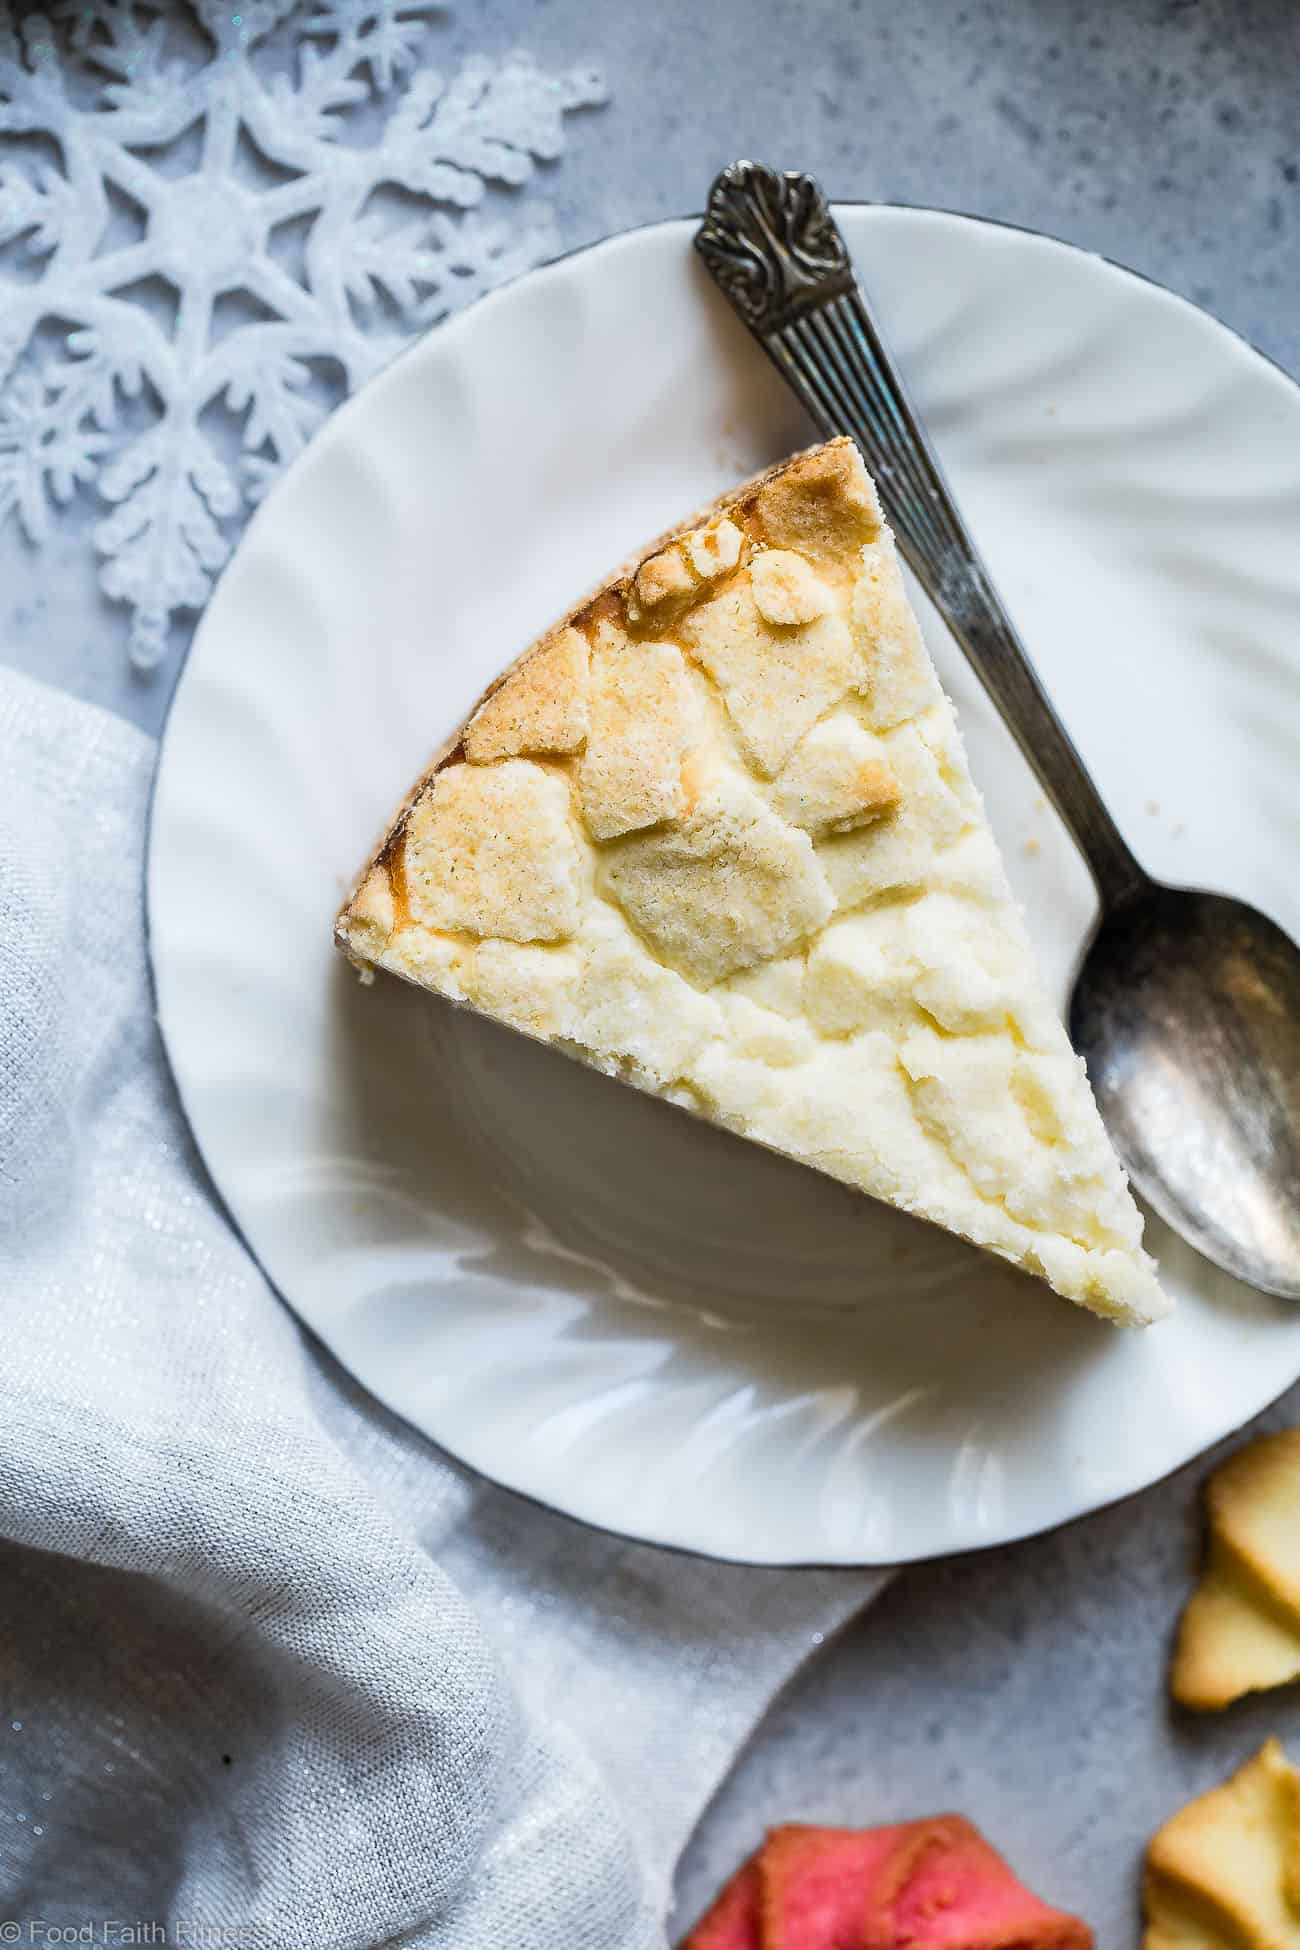 Sugar Free Greek Yogurt Gluten Free Cheesecake - This gluten free cheesecake is an easy dessert that combines 2 Holiday treats ! It's so creamy you won't believe it's healthy, sugar free and only 235 calories! | Foodfaithfitness.com | @FoodFaithFit